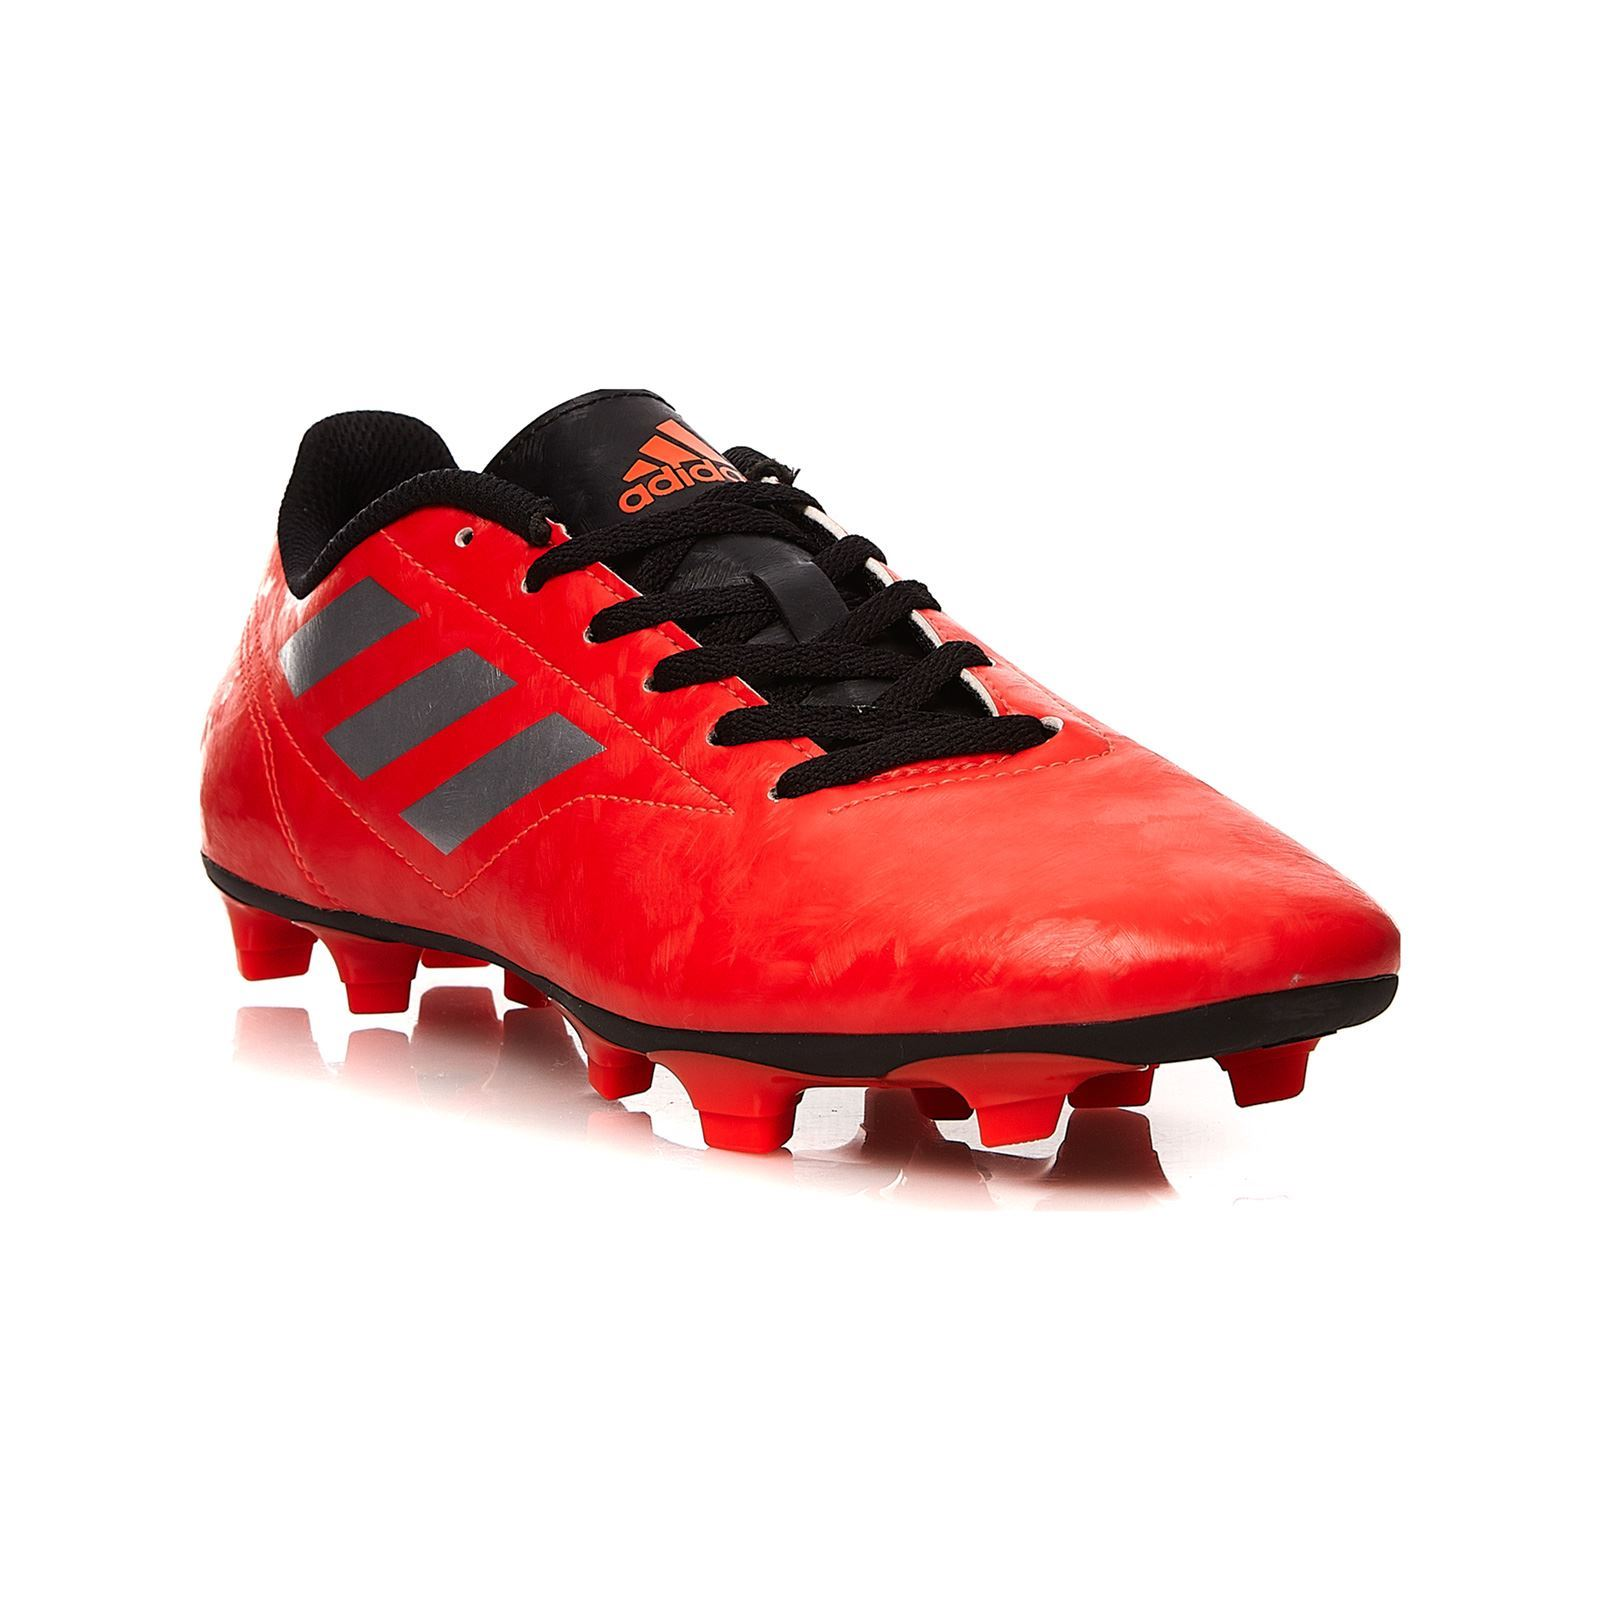 super popular 4aac1 c57ad ADIDAS PERFORMANCE Conquisto II FG - Baskets basses - rouge